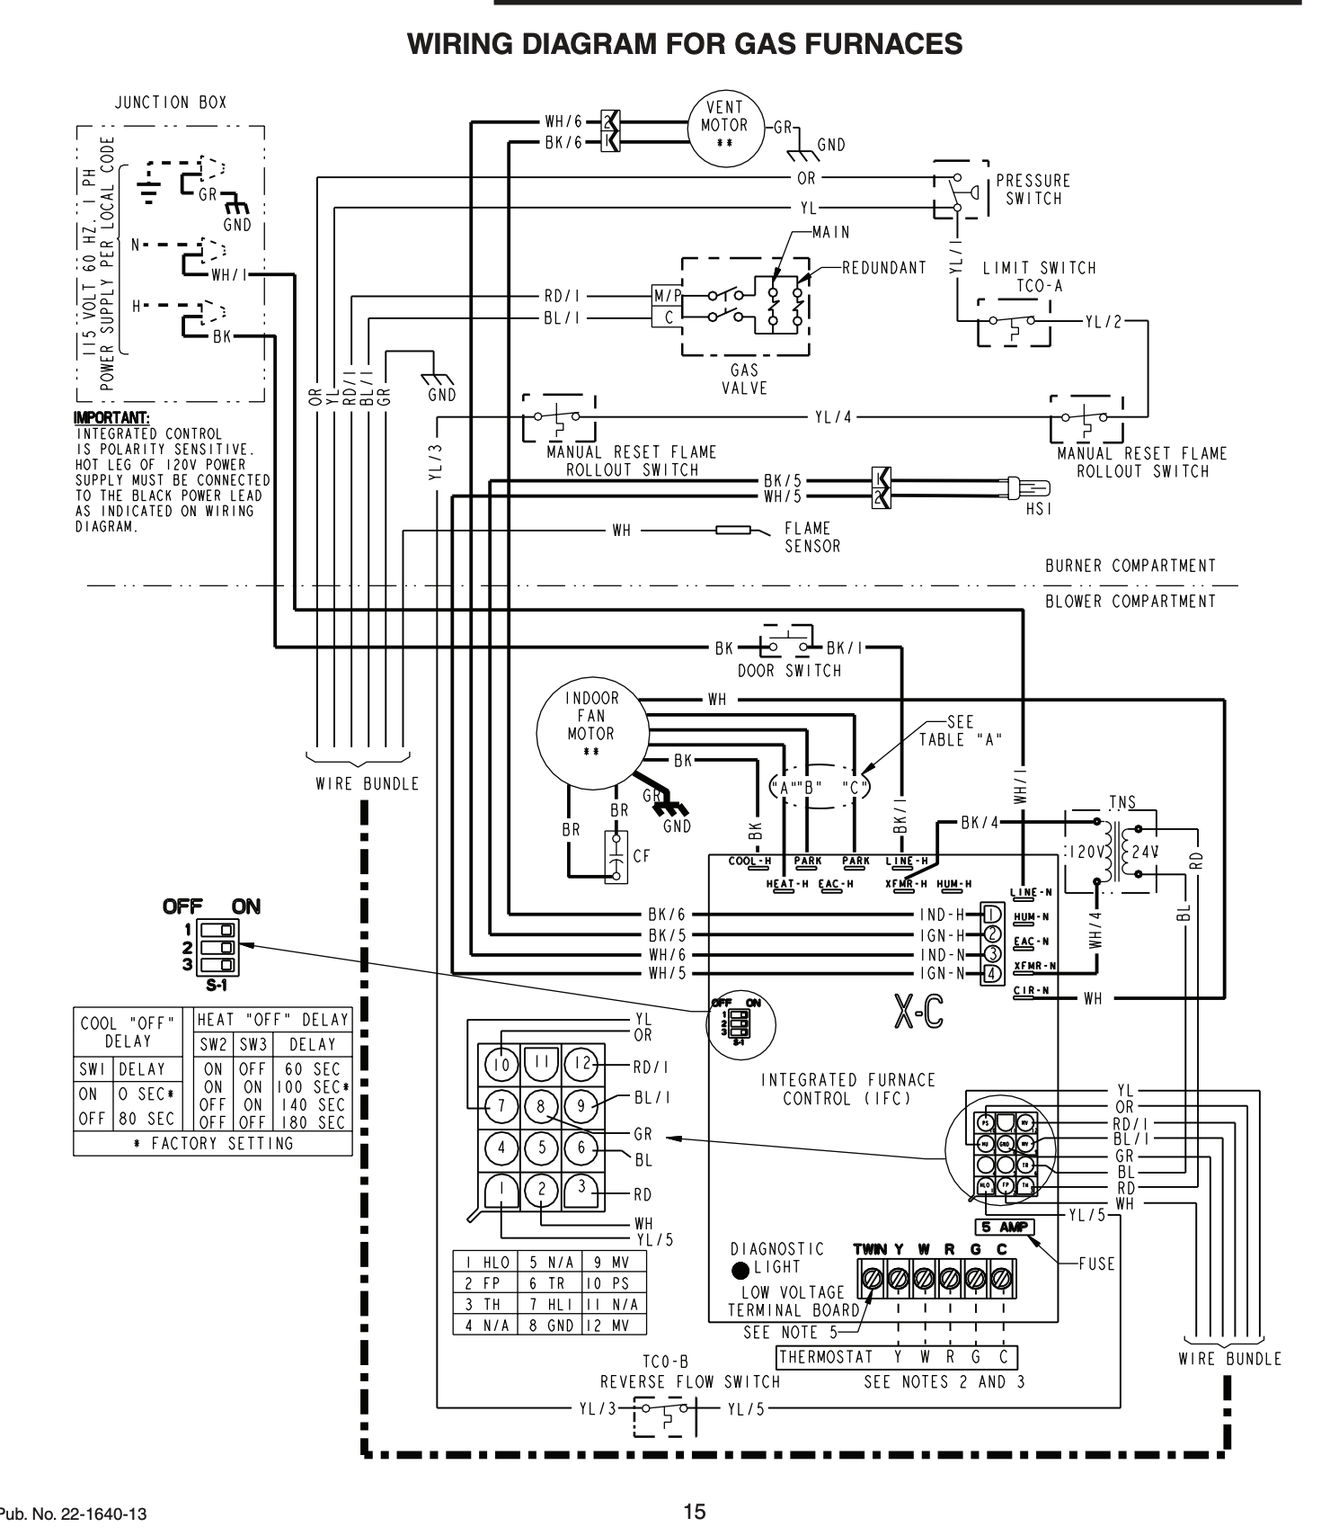 gas heater wiring diagram furnaces wiring schematics wiring diagram e7  furnaces wiring schematics wiring